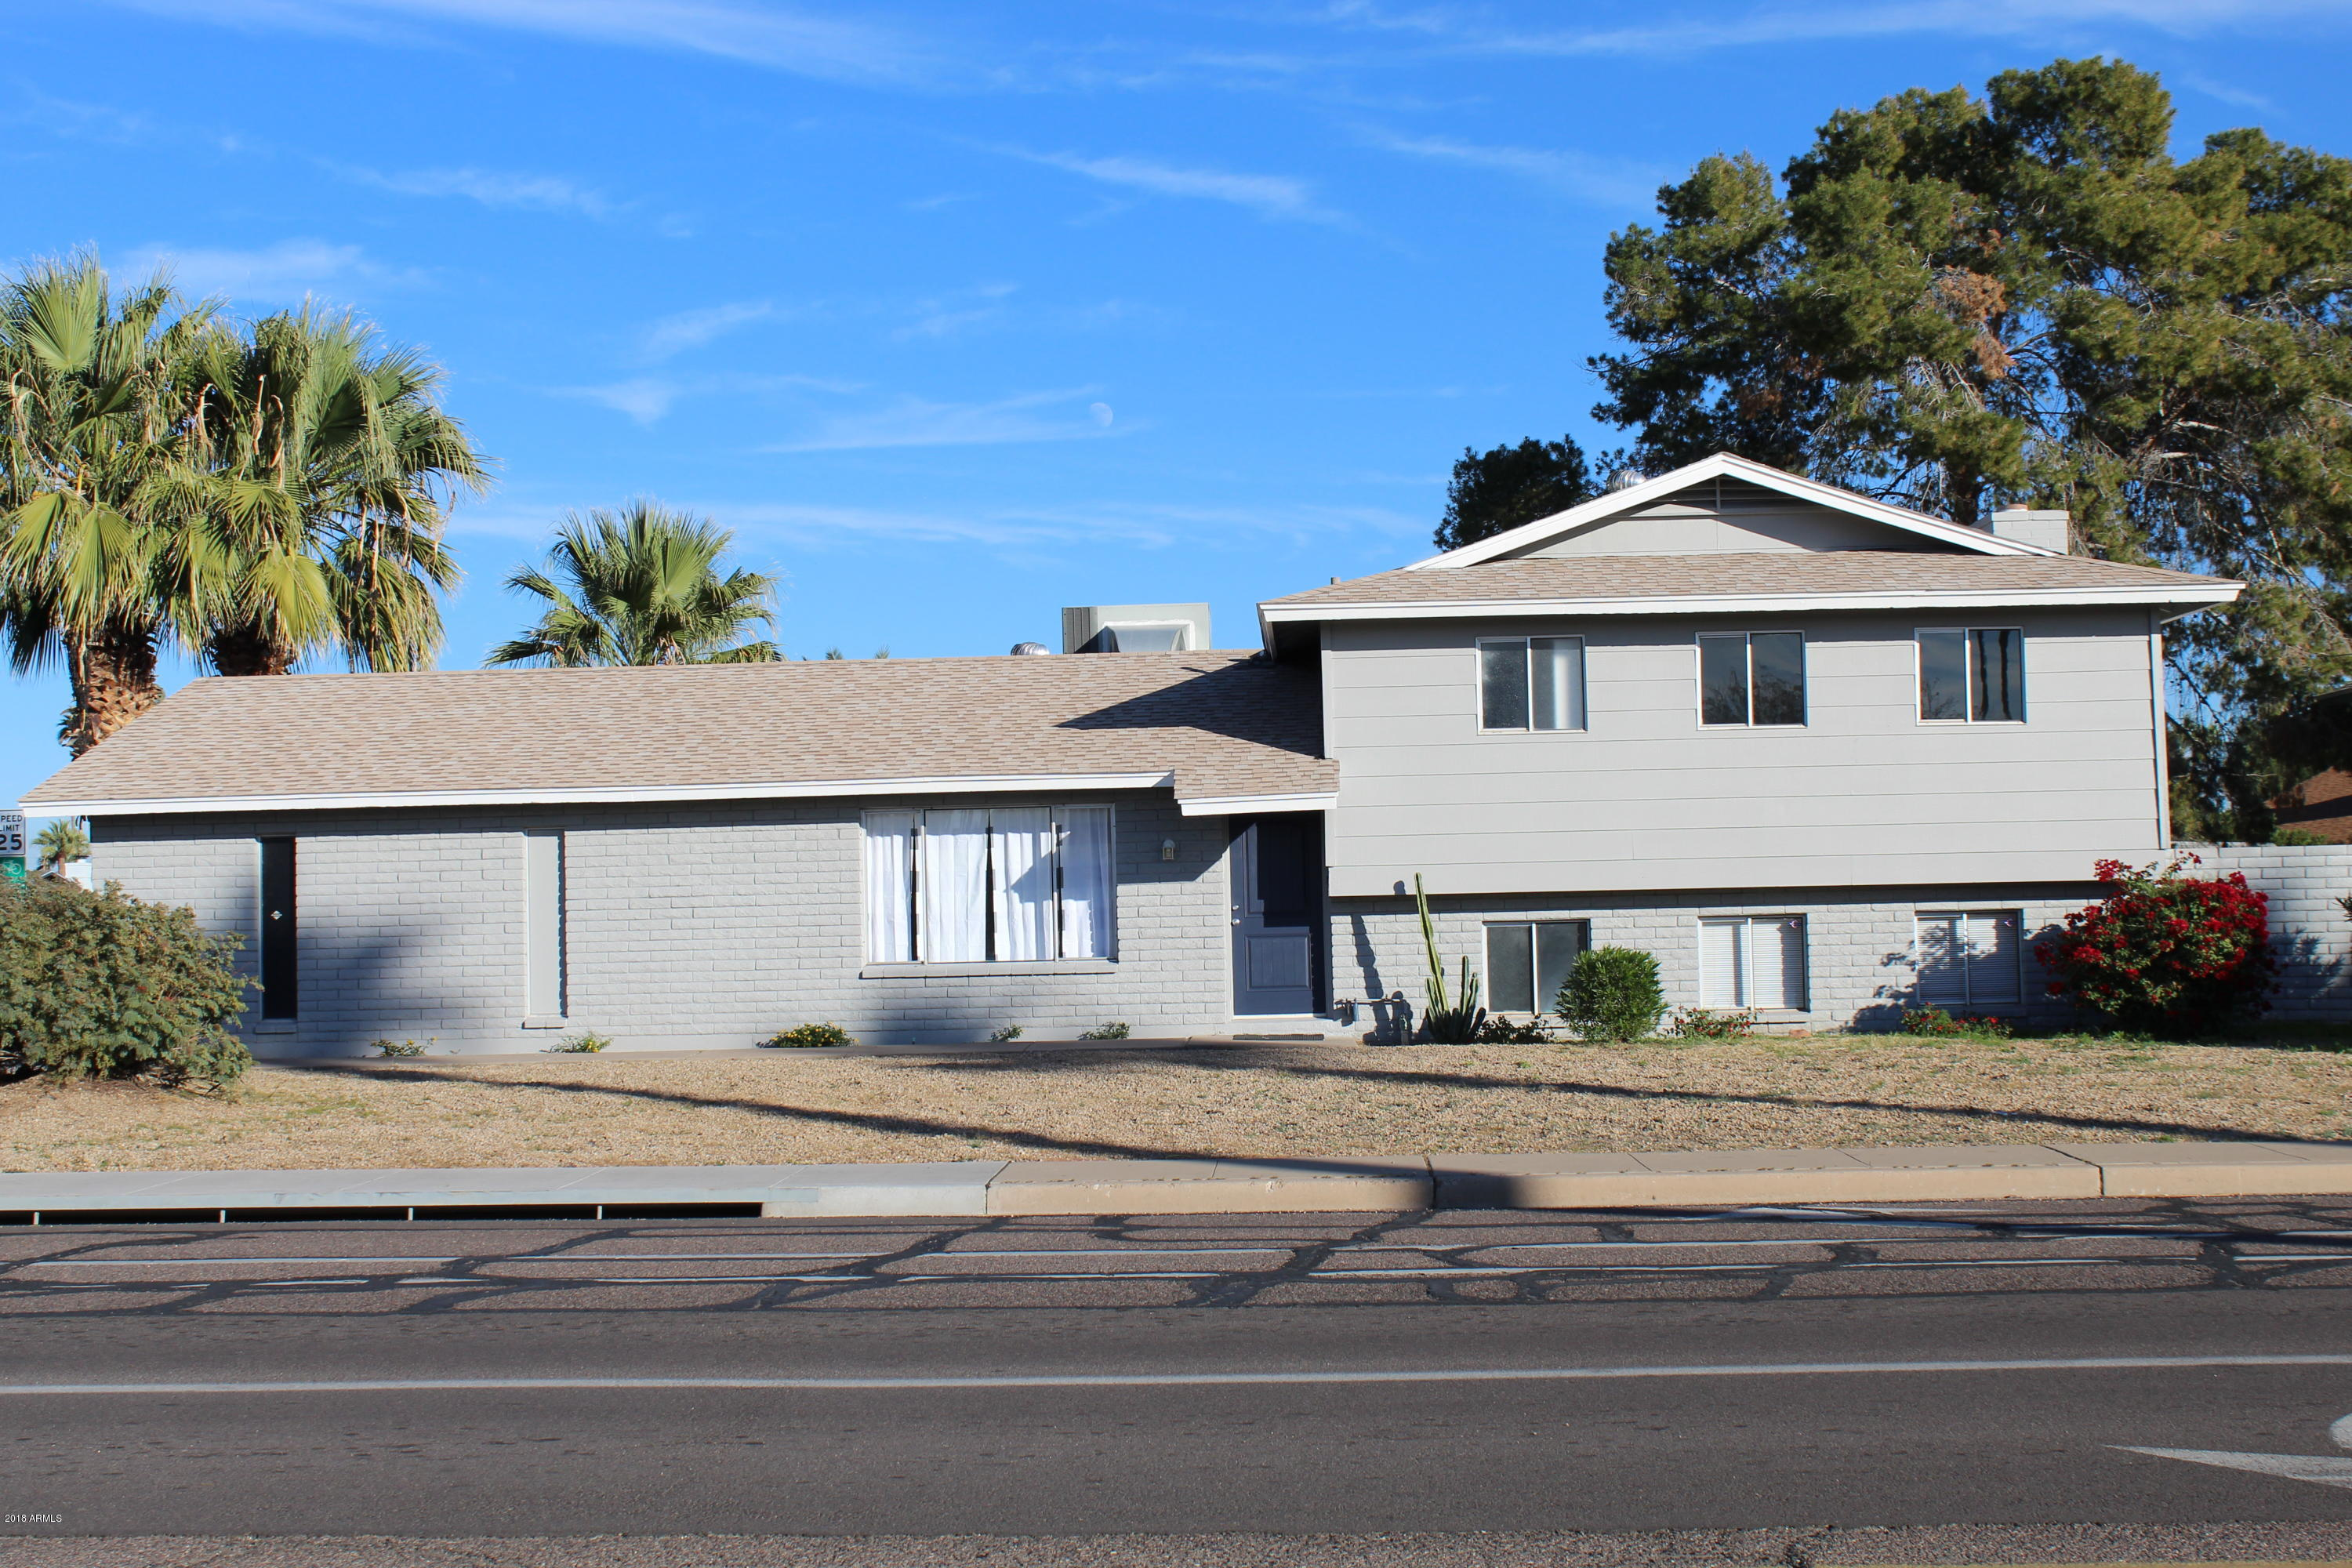 Photo of 4649 W ORANGEWOOD Avenue, Glendale, AZ 85301